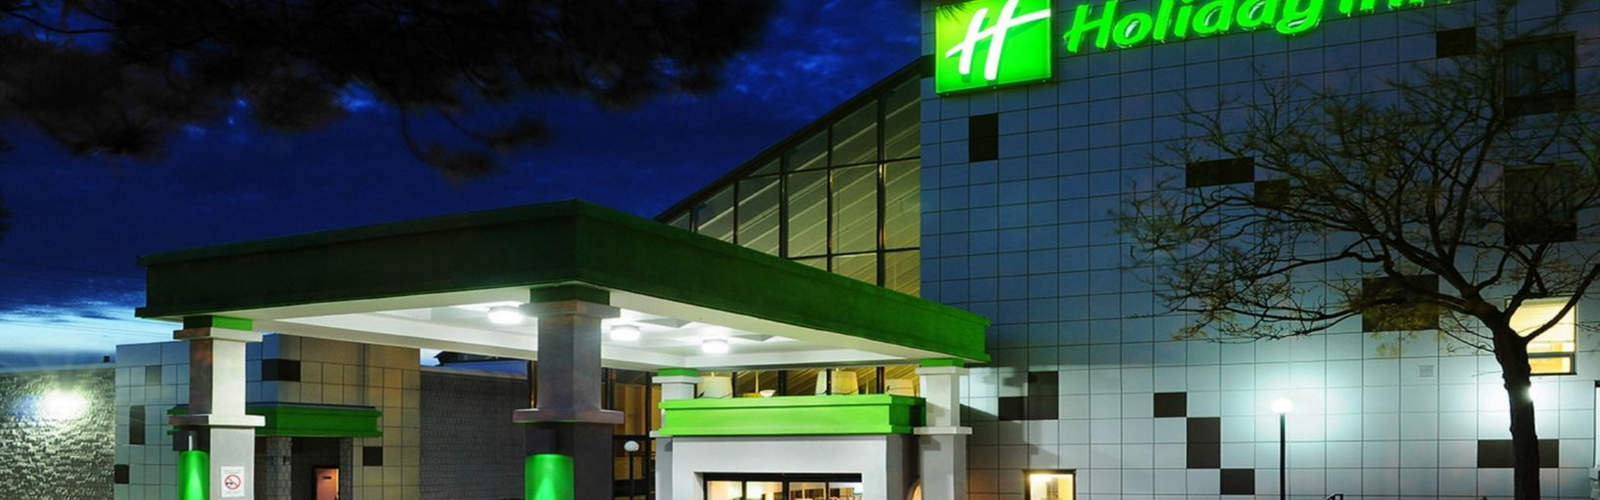 Read more about the article Holiday Inn Guelph Hotel & Conference Centre